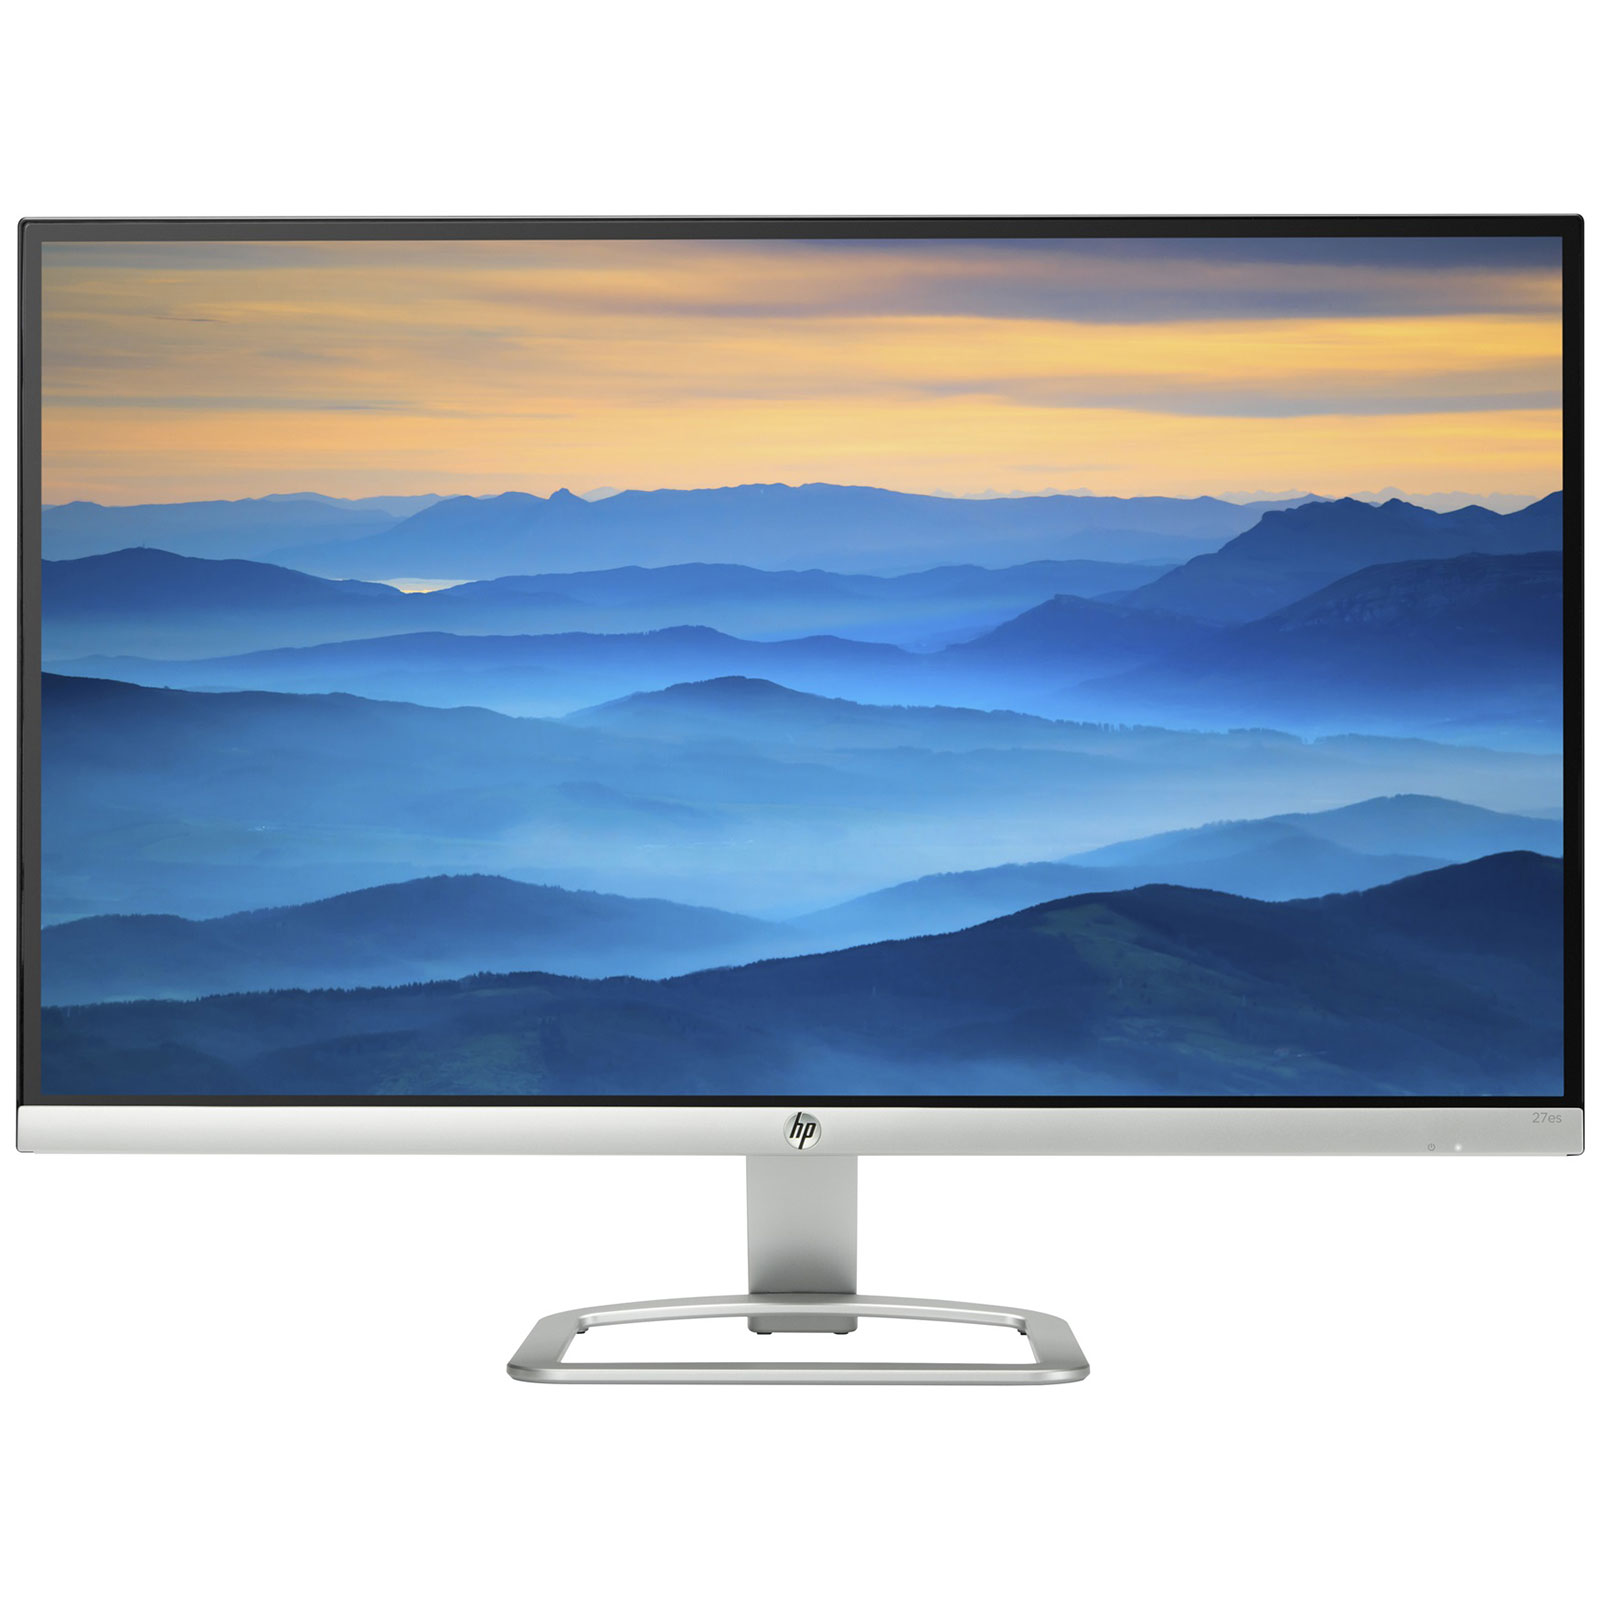 Hp 27 led 27es ecran pc hp sur for Ecran ips 27